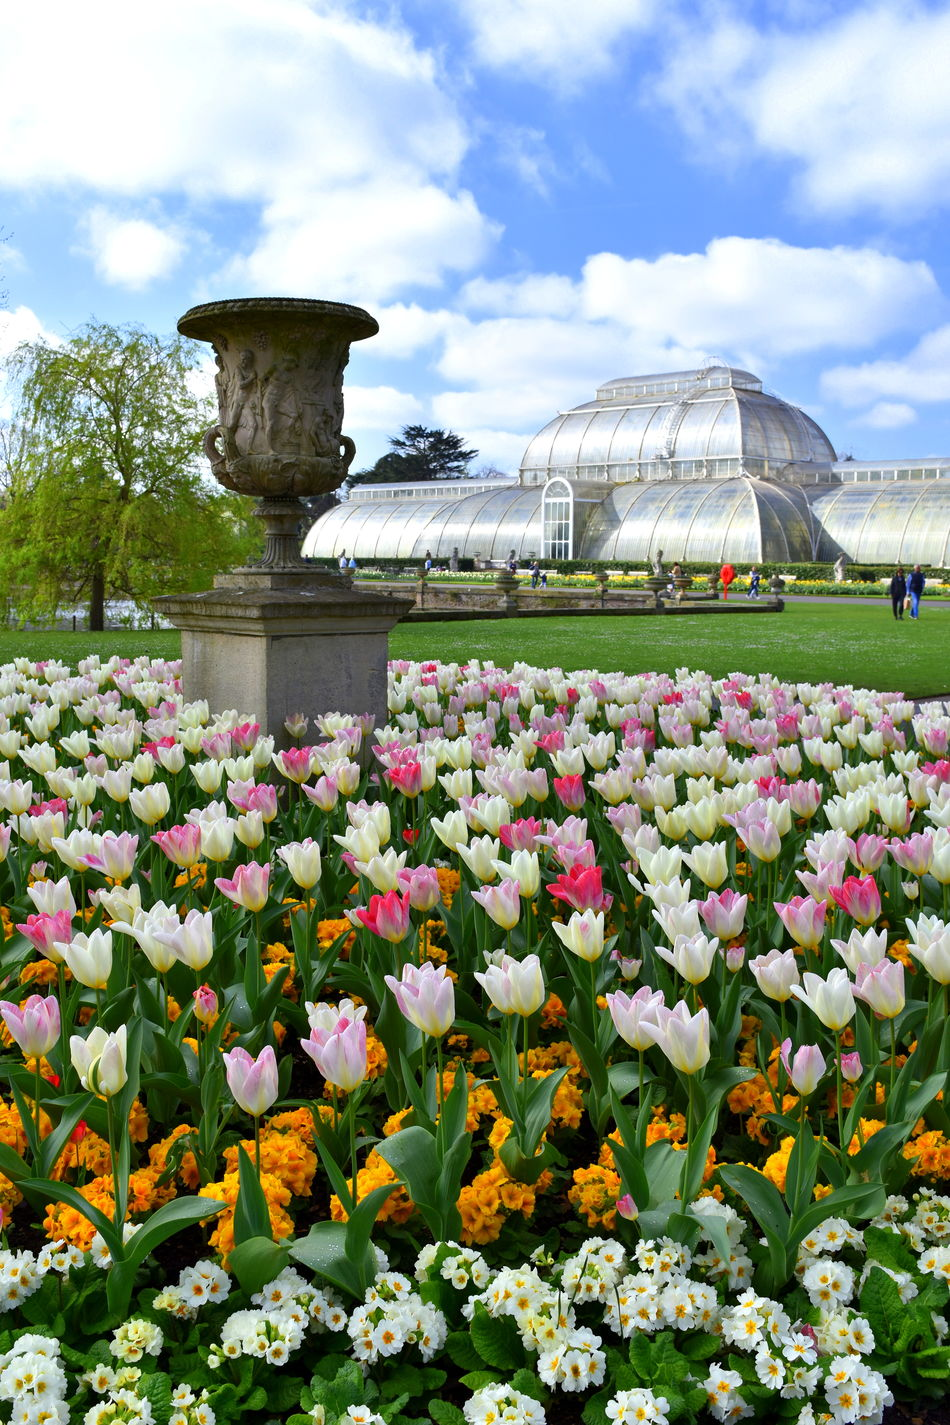 Beauty In Nature Cloud - Sky Day Flower Freshness Growth Kew Garden Kew Gardens Kew Gardens, London Nature Outdoors Plant Sky Tulip Tulips Tulips Flowers Tulips🌷